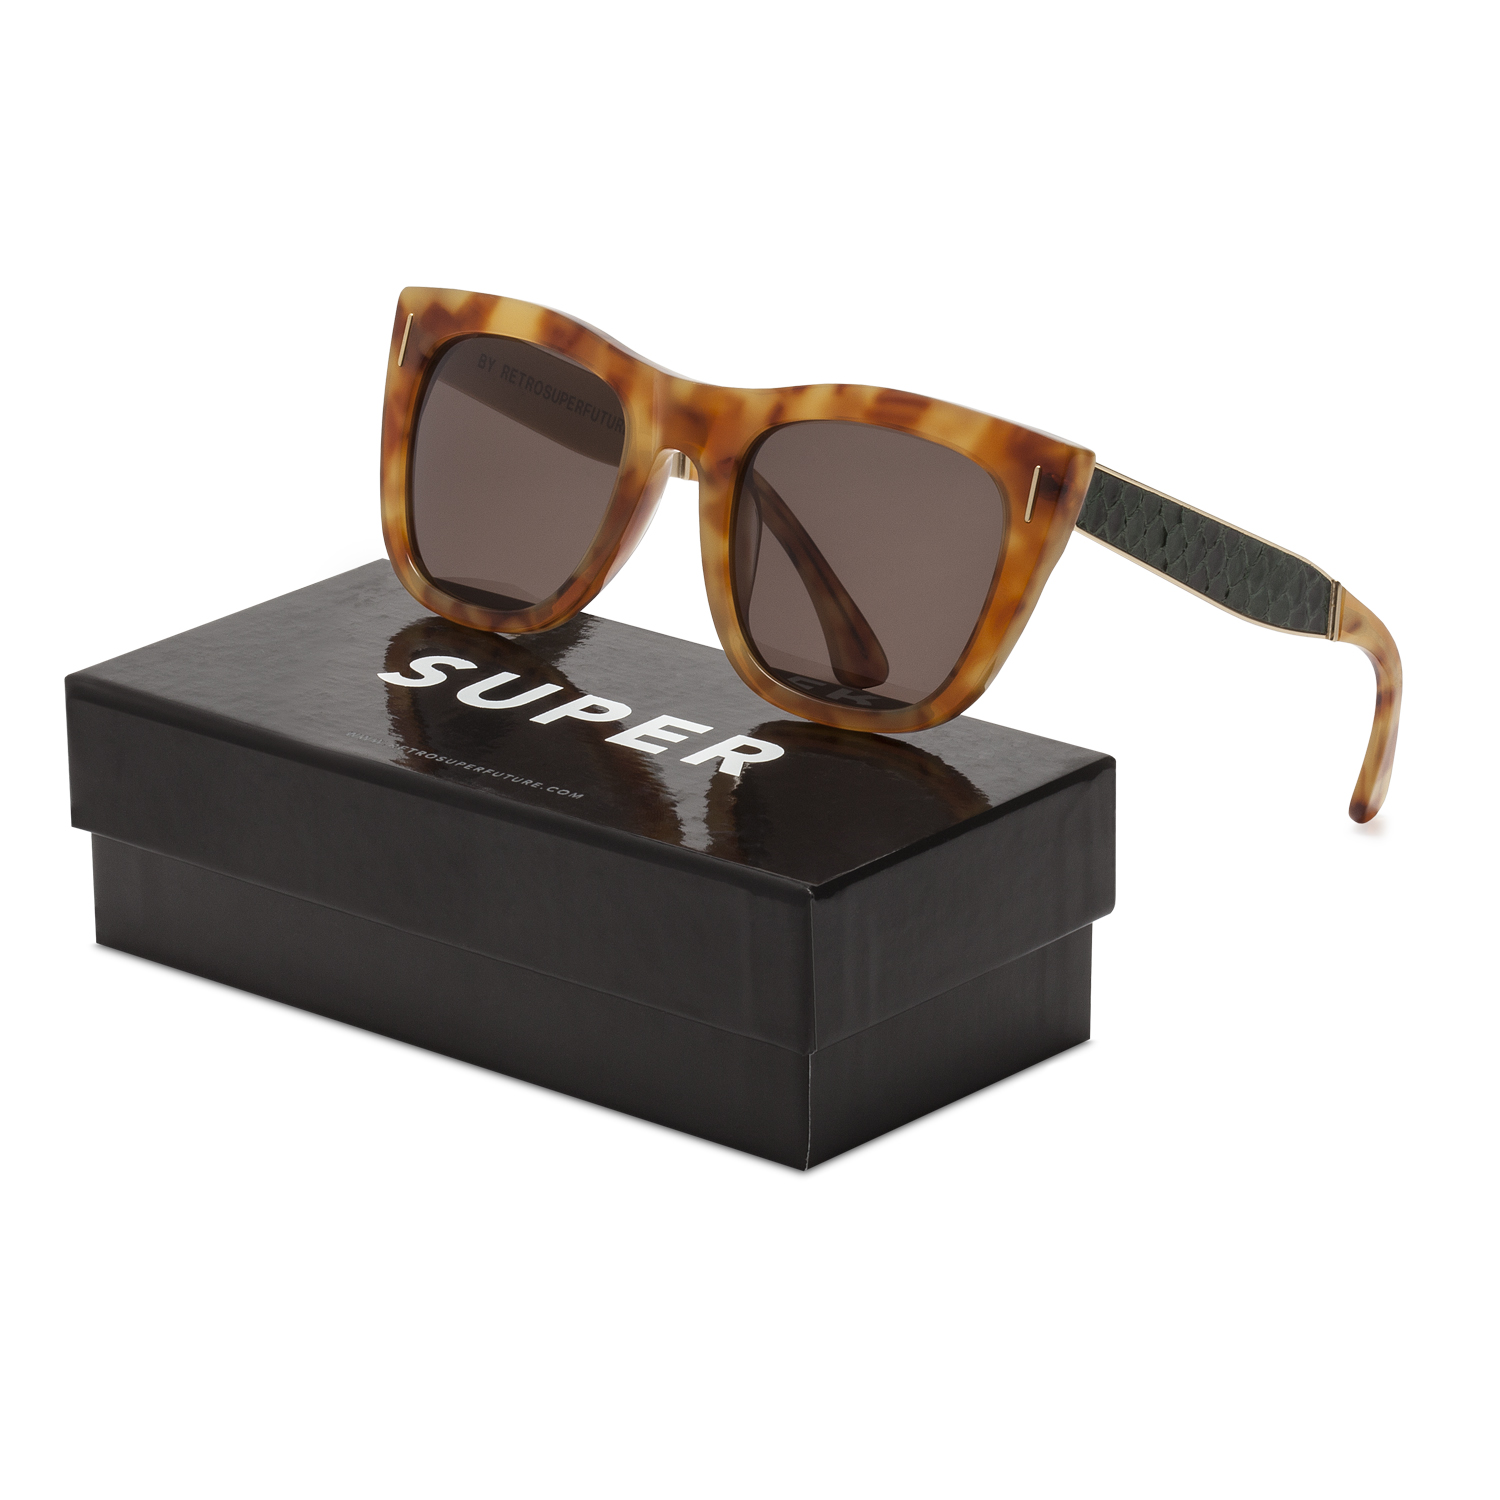 4397fa78d5c Details about RETROSUPERFUTURE Super Gals Sinner Sunglasses SU7JL Brown  Green Snake Skin Frame